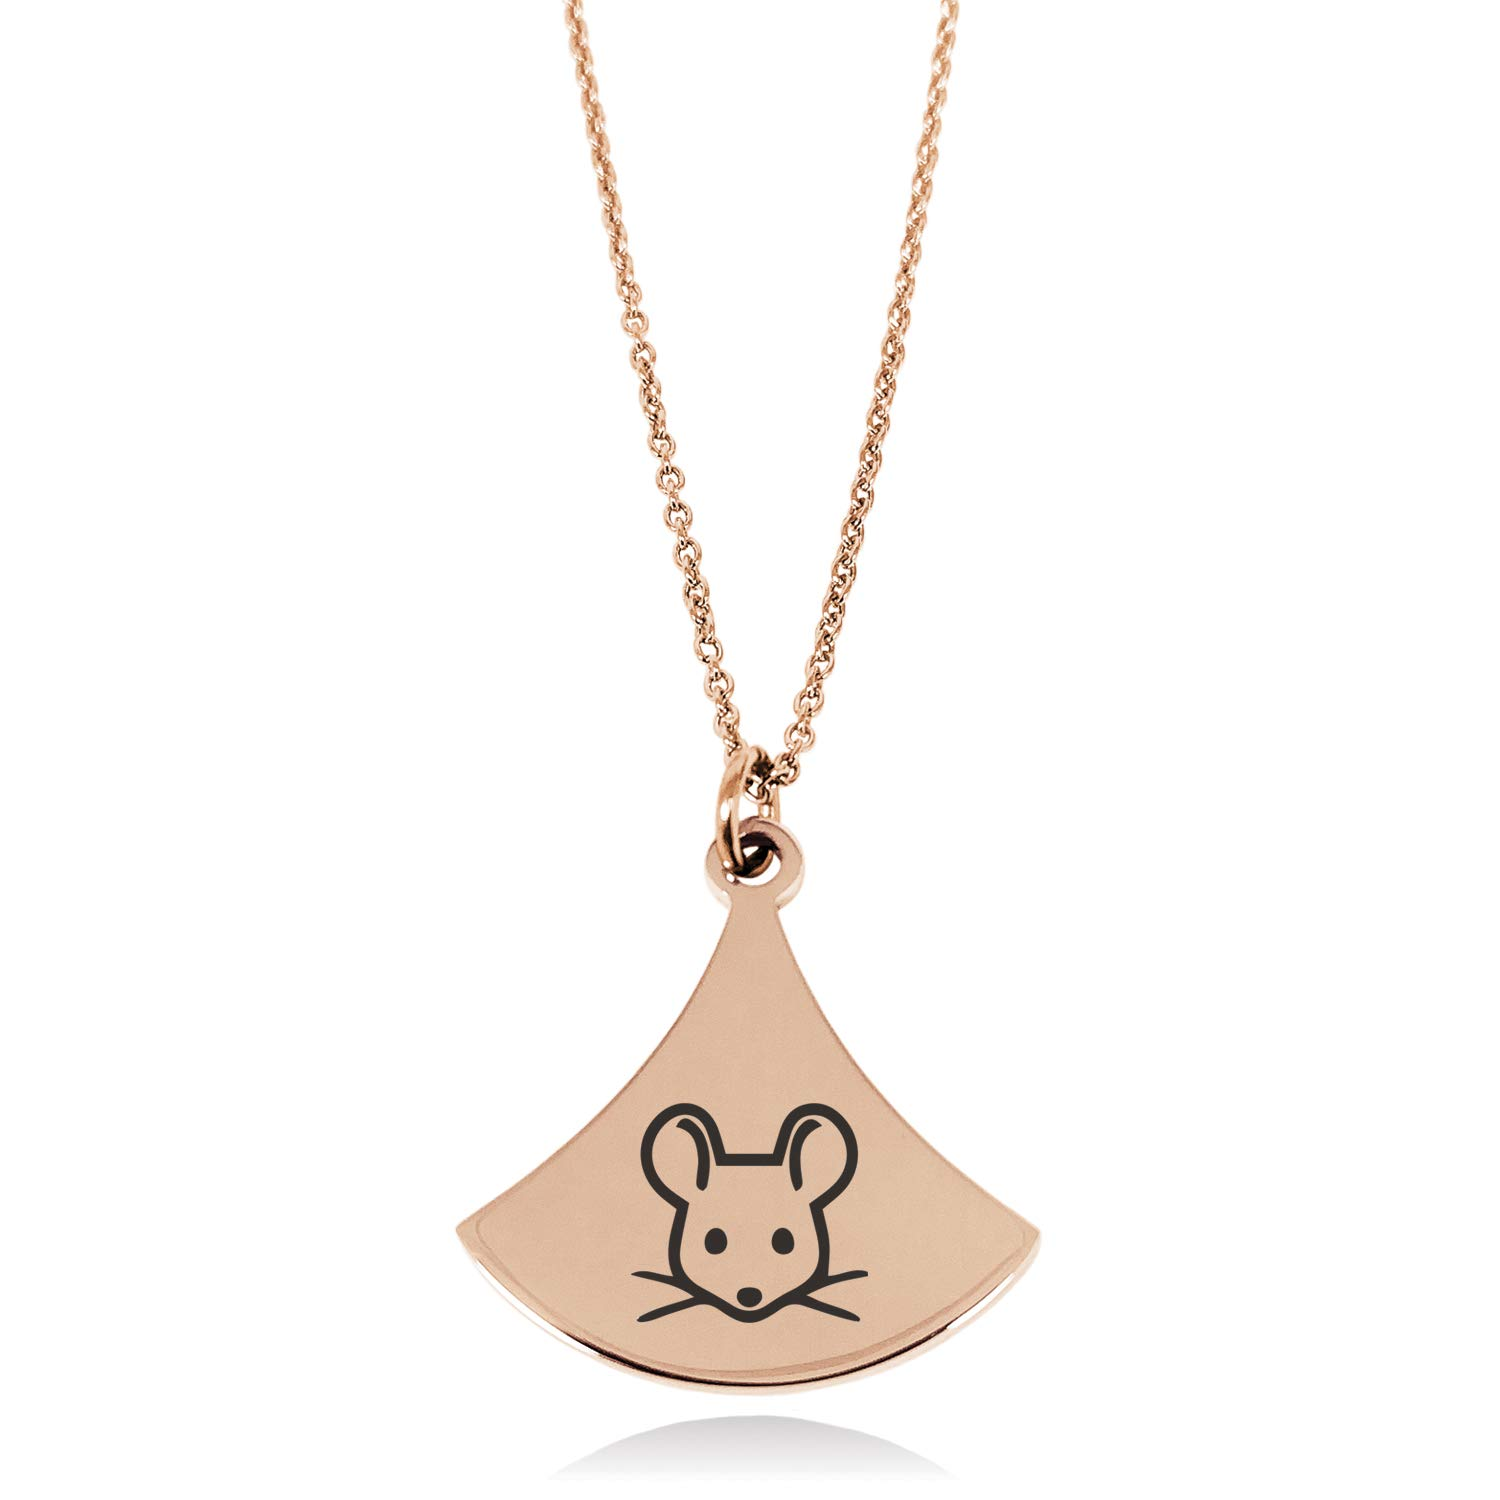 Stainless Steel Mouse Icon Pendulum Curved Triangle Charm Pendant Necklace